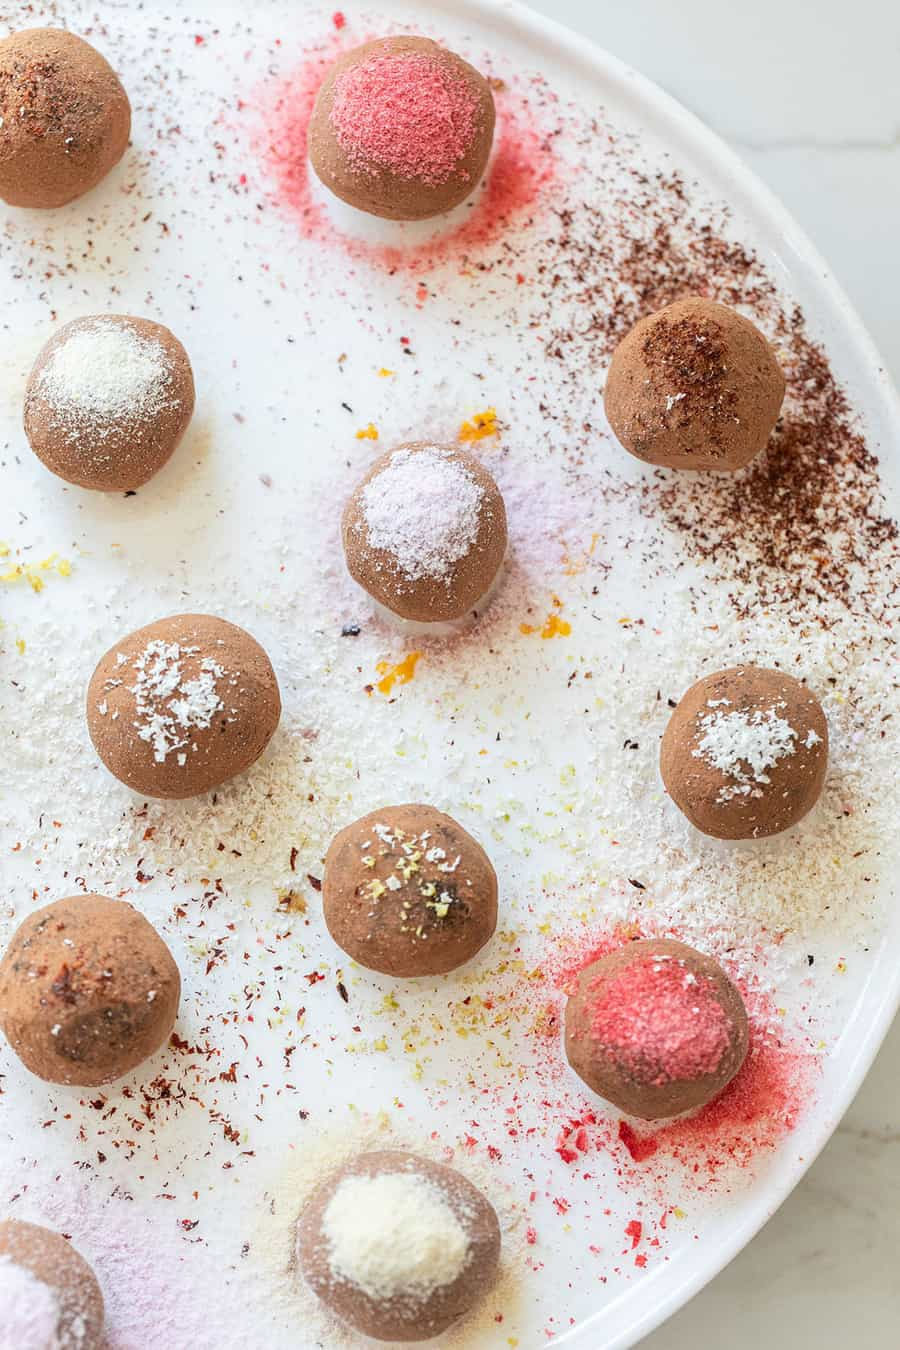 Chocolate truffles with fun toppings